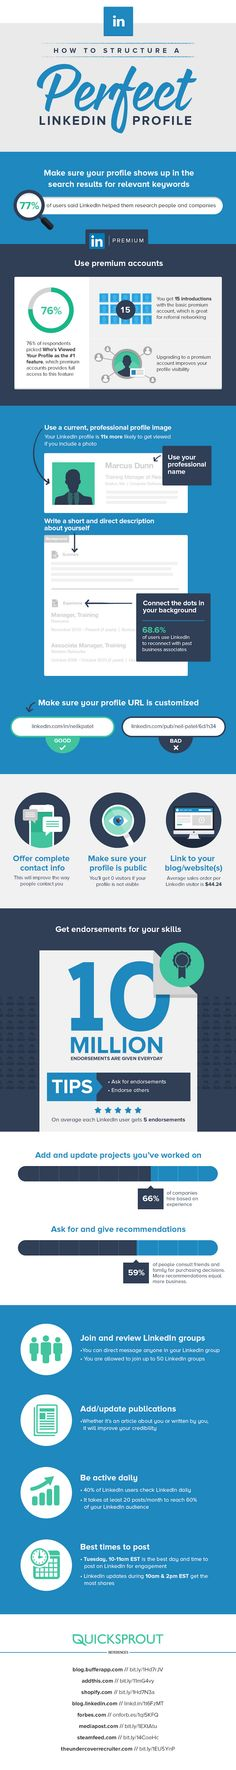 How to optimize your LinkedIn profile.